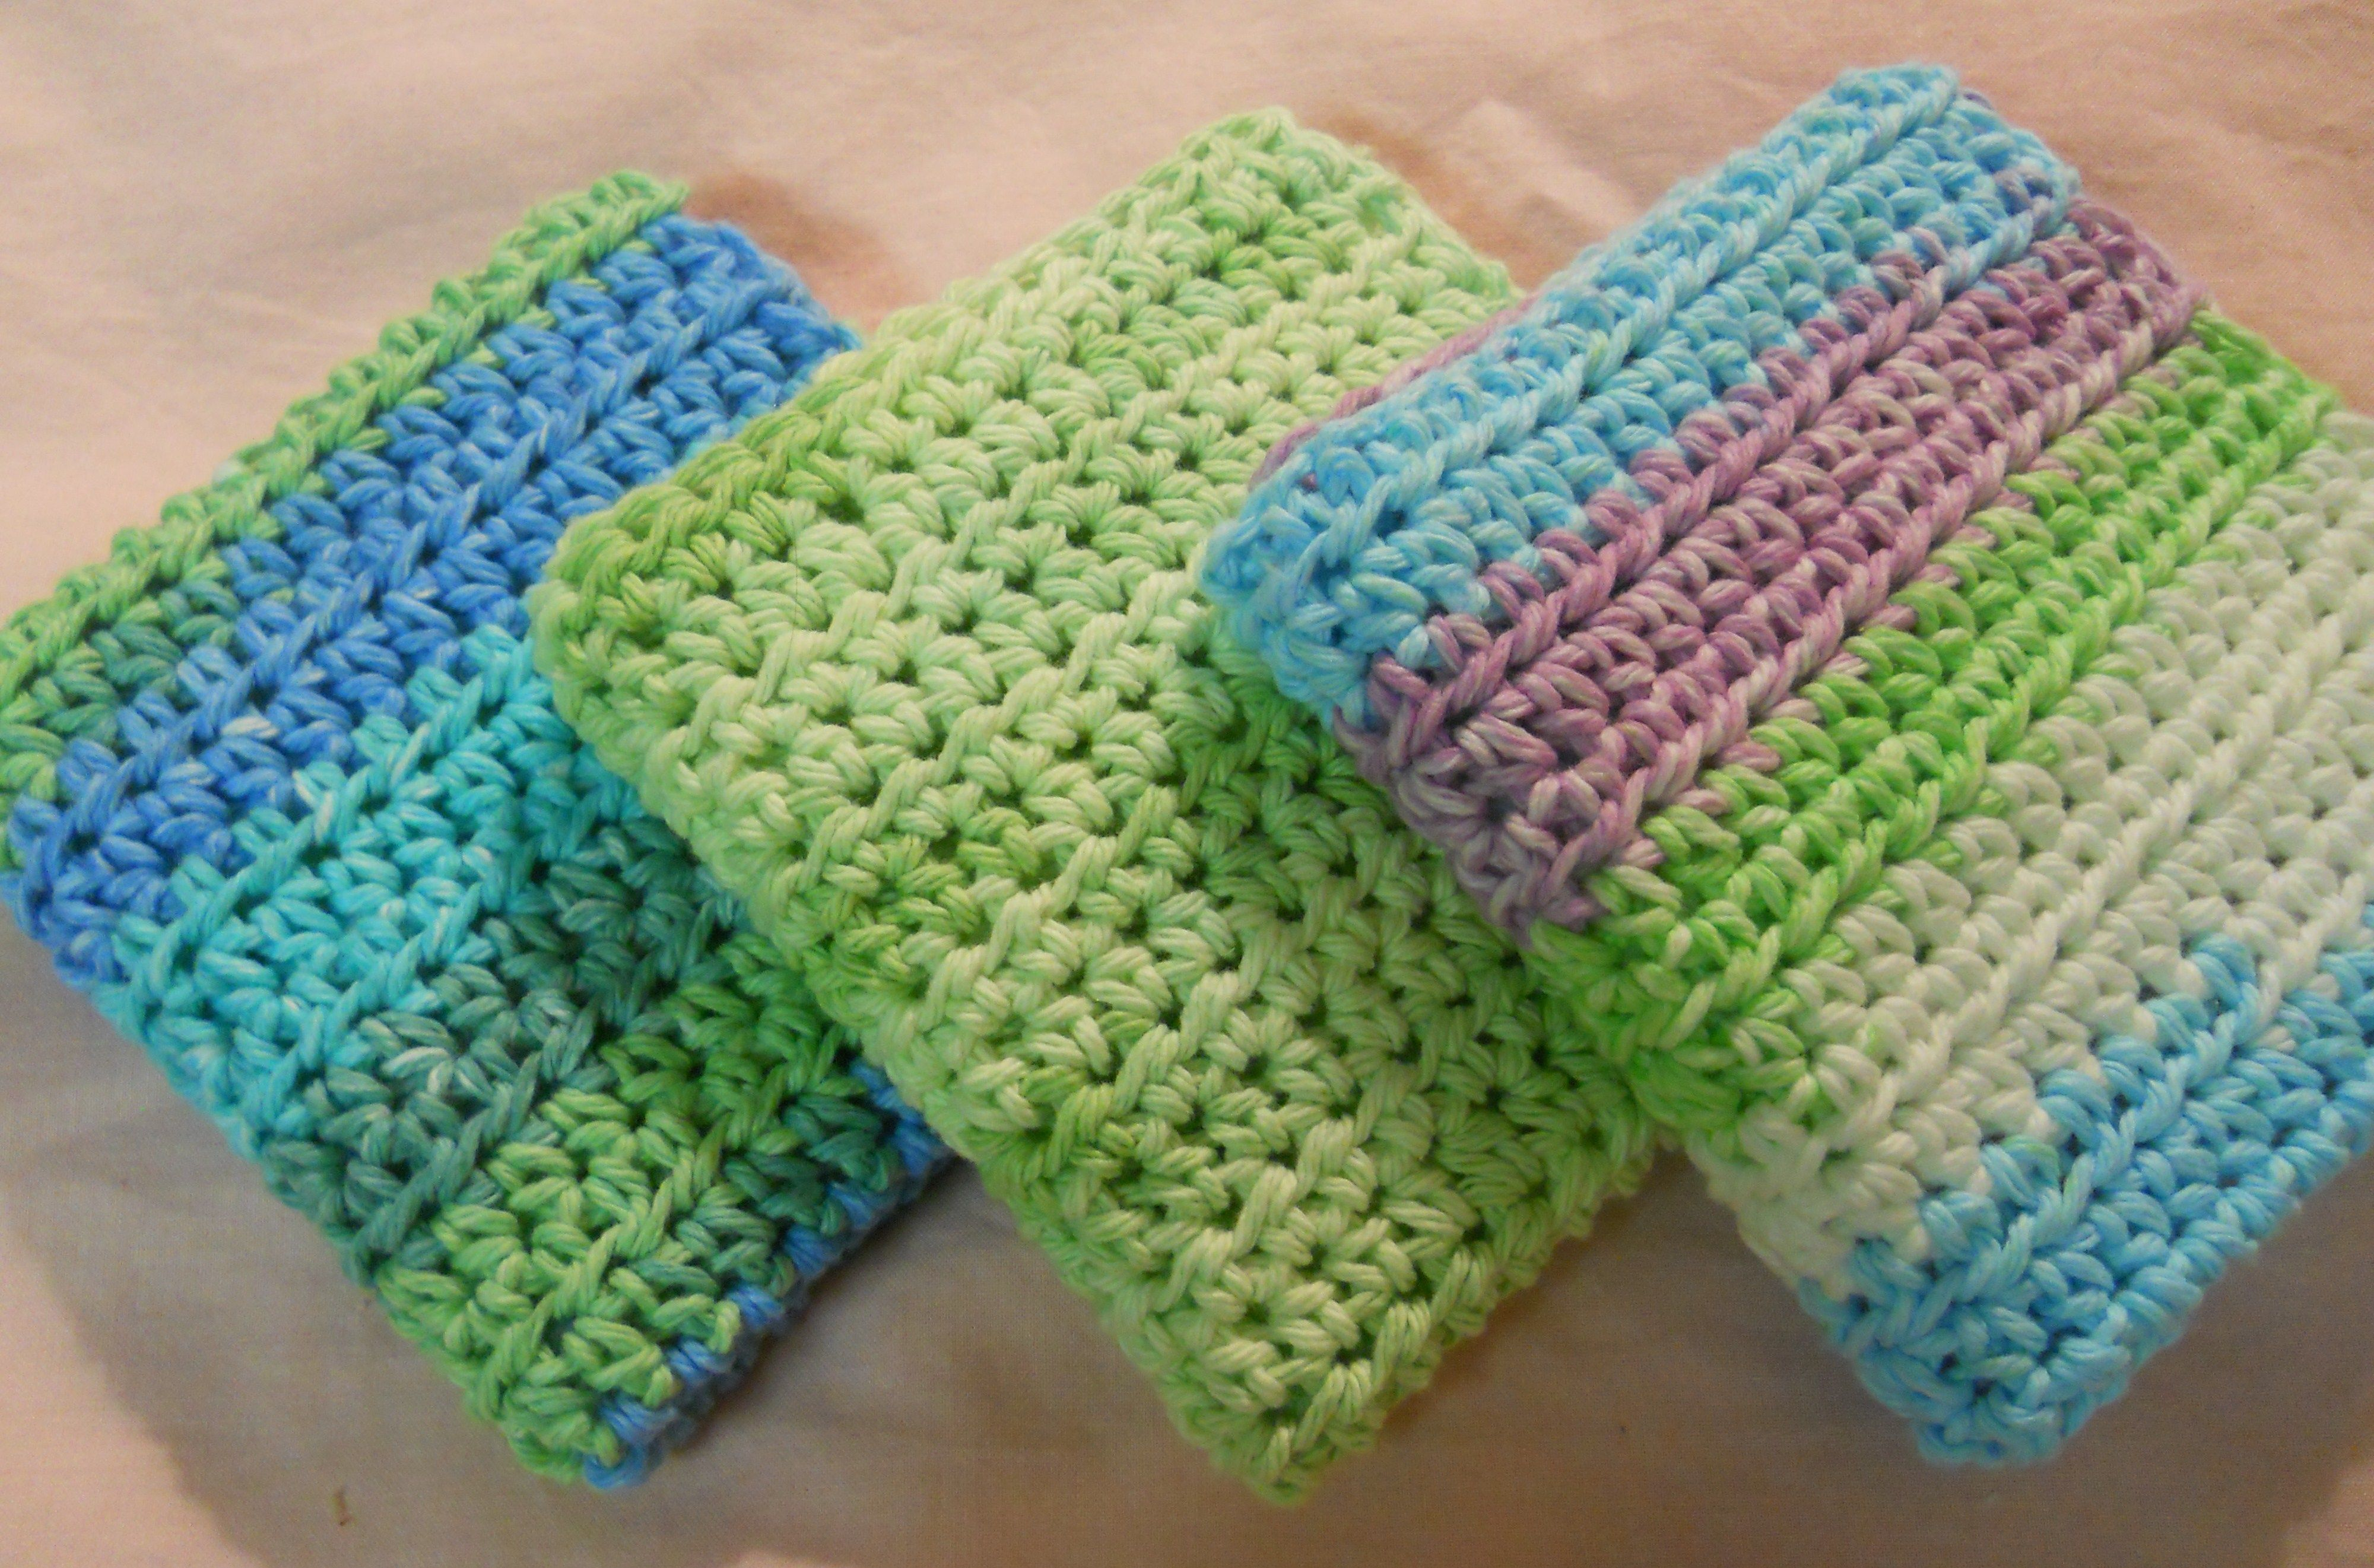 Crocheting Dishcloths : crochet dishcloths Crocheting and Knitting Pinterest